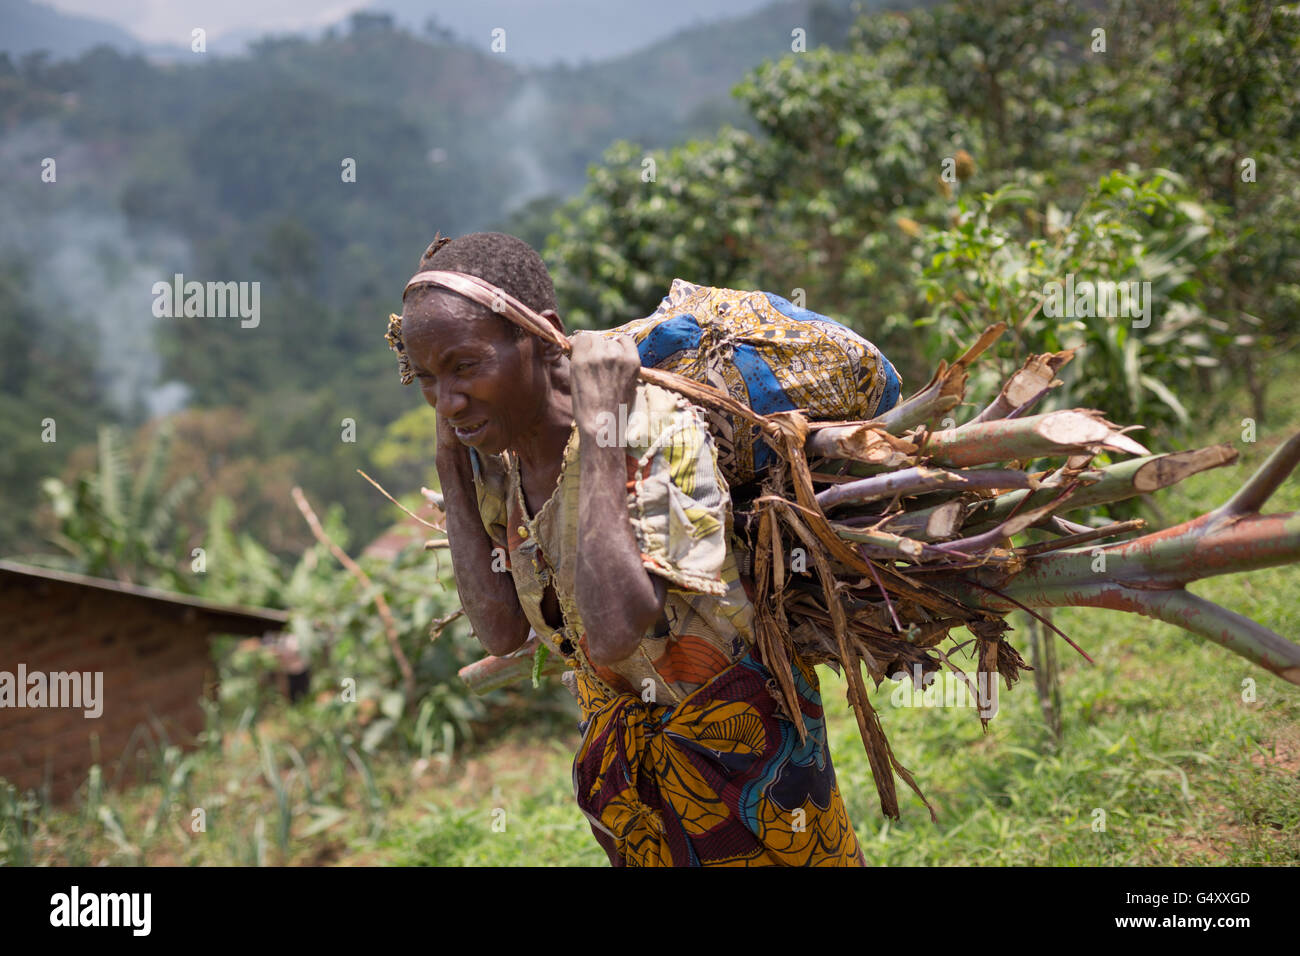 A woman carries firewood down a rural village lane in the foothills of the Rwenzori Mountains on the DRC / Uganda - Stock Image